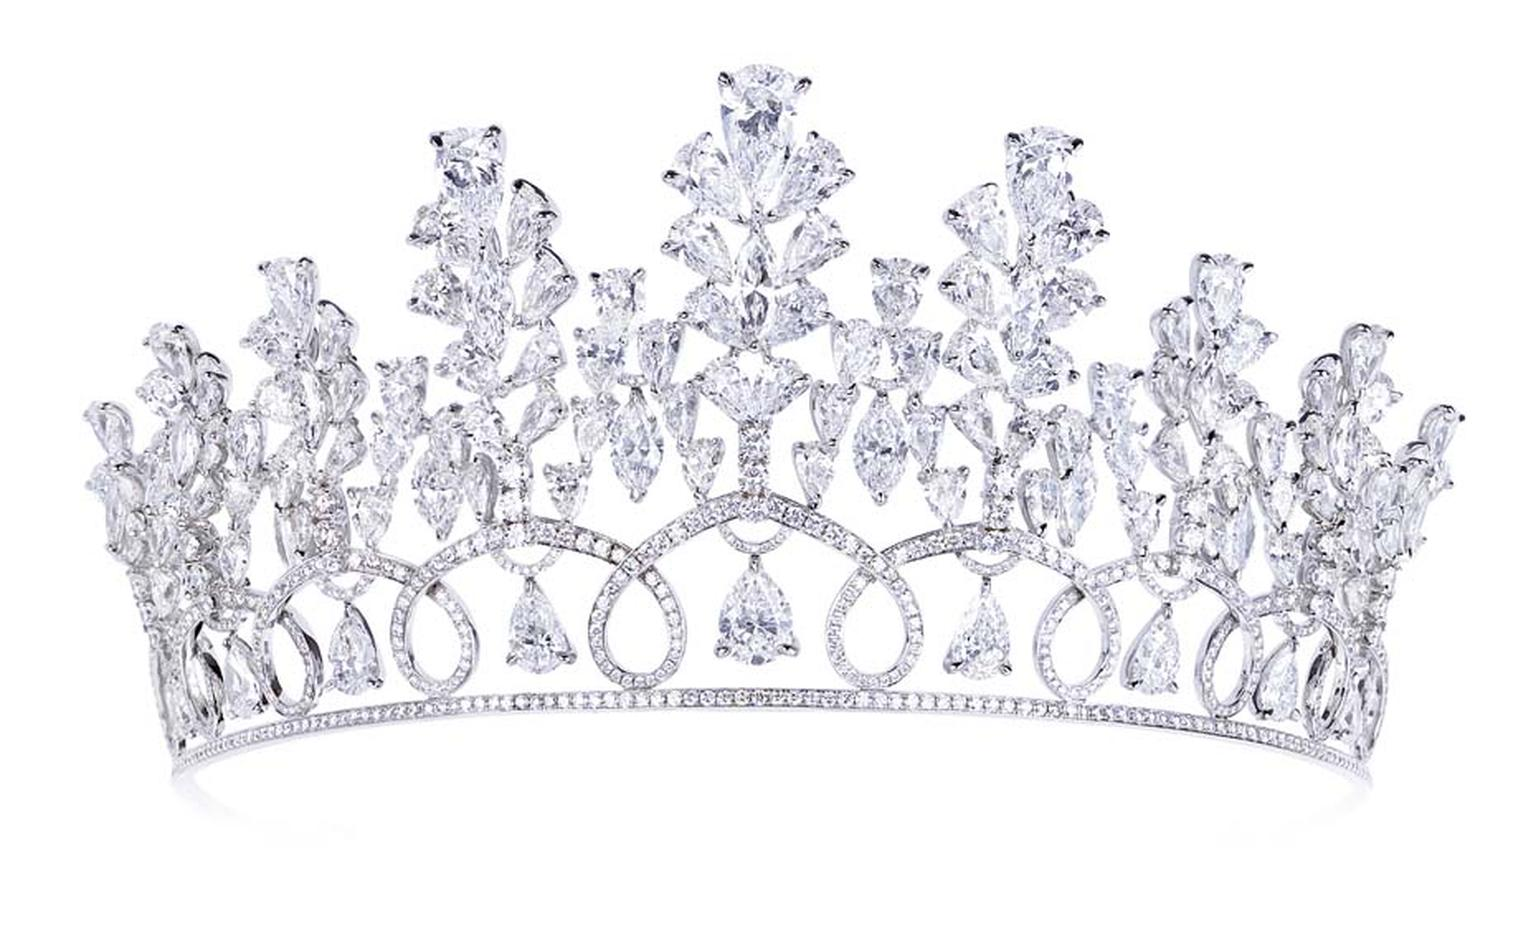 White gold tiara with 88.40ct of white fancy cut diamonds by Moussaieff.